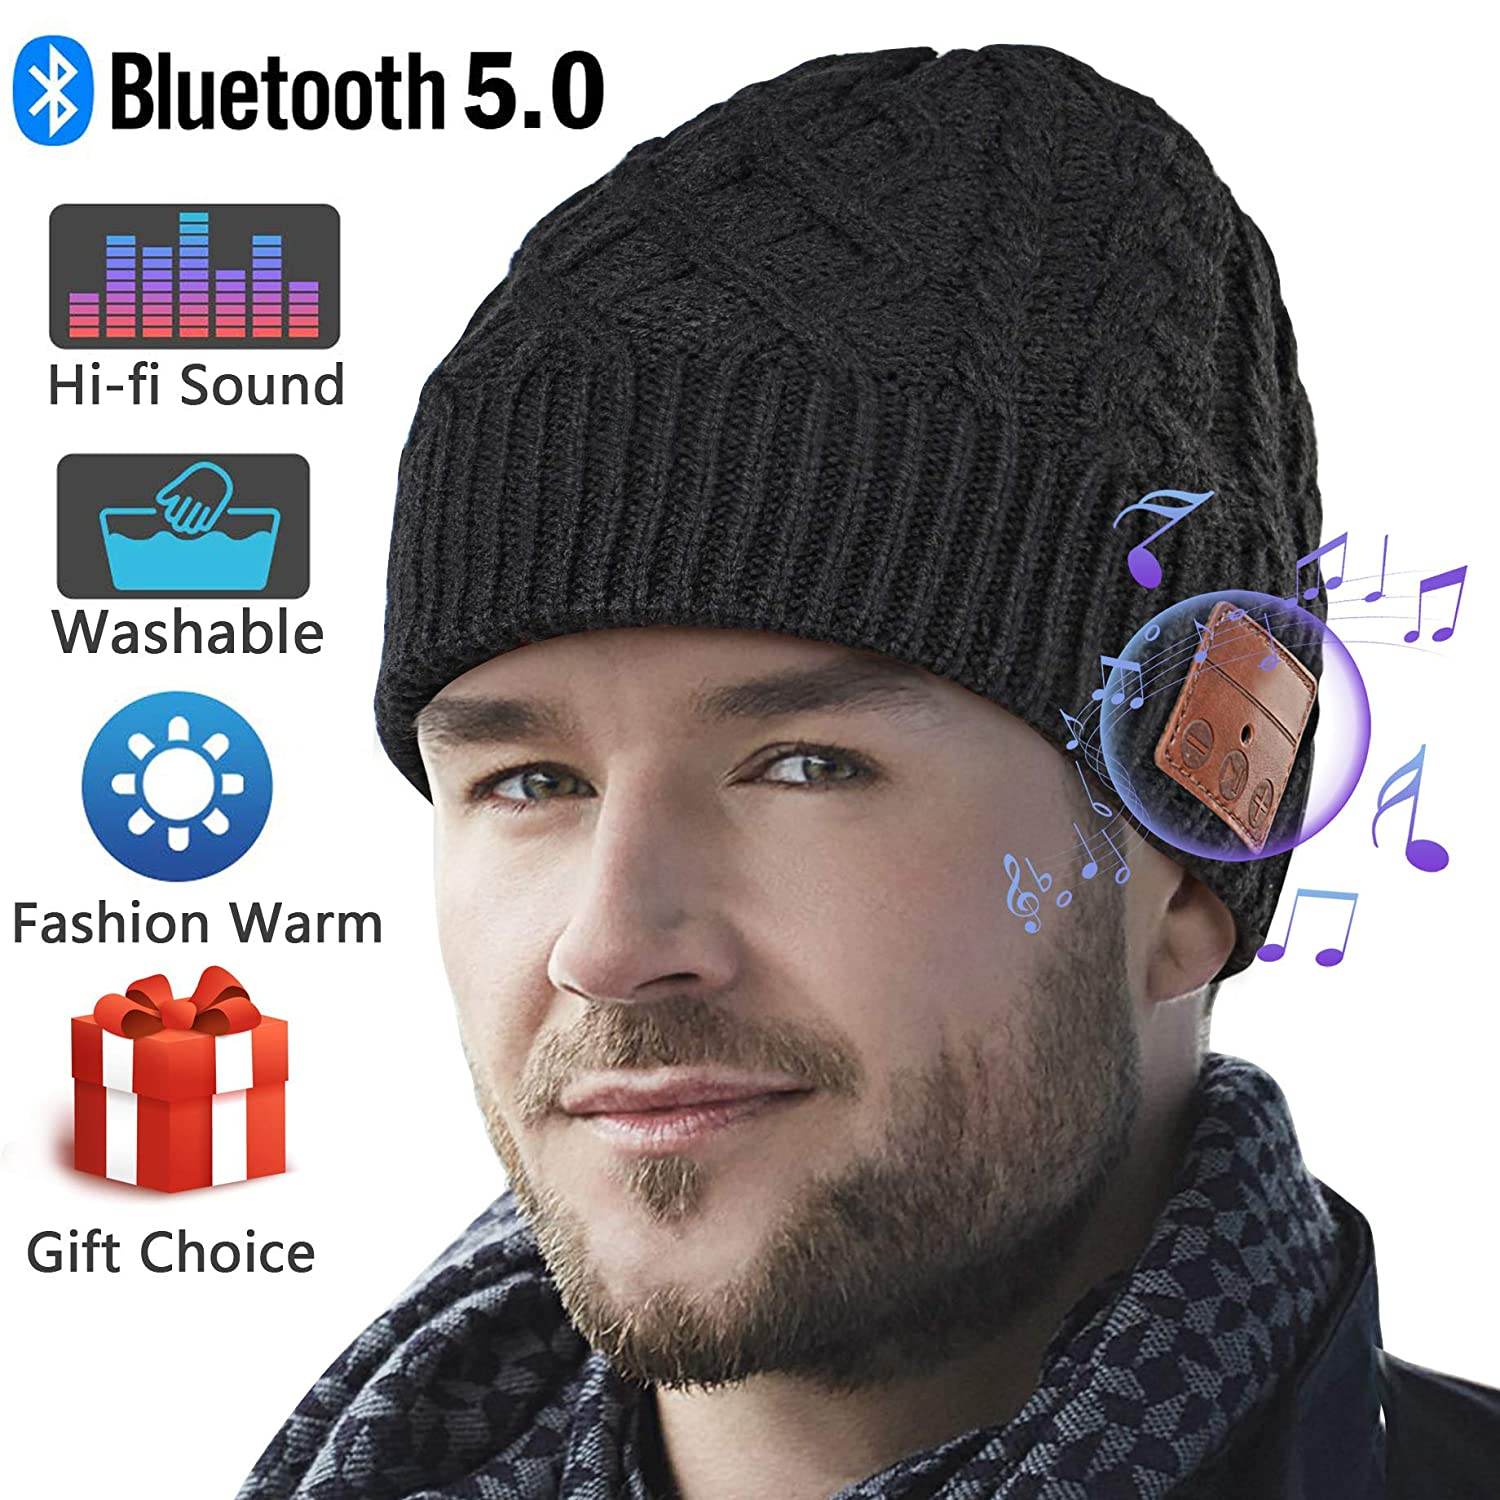 Deegotech Bluetooth Beanie,Upgraded V5.0 Bluetooth Hat for Men, Wireless Earphone Beanie Headphones,Unisex Winter Music Hats with HD Stereo Speakers Built-in Microphone,Mens Gifts for Christmas